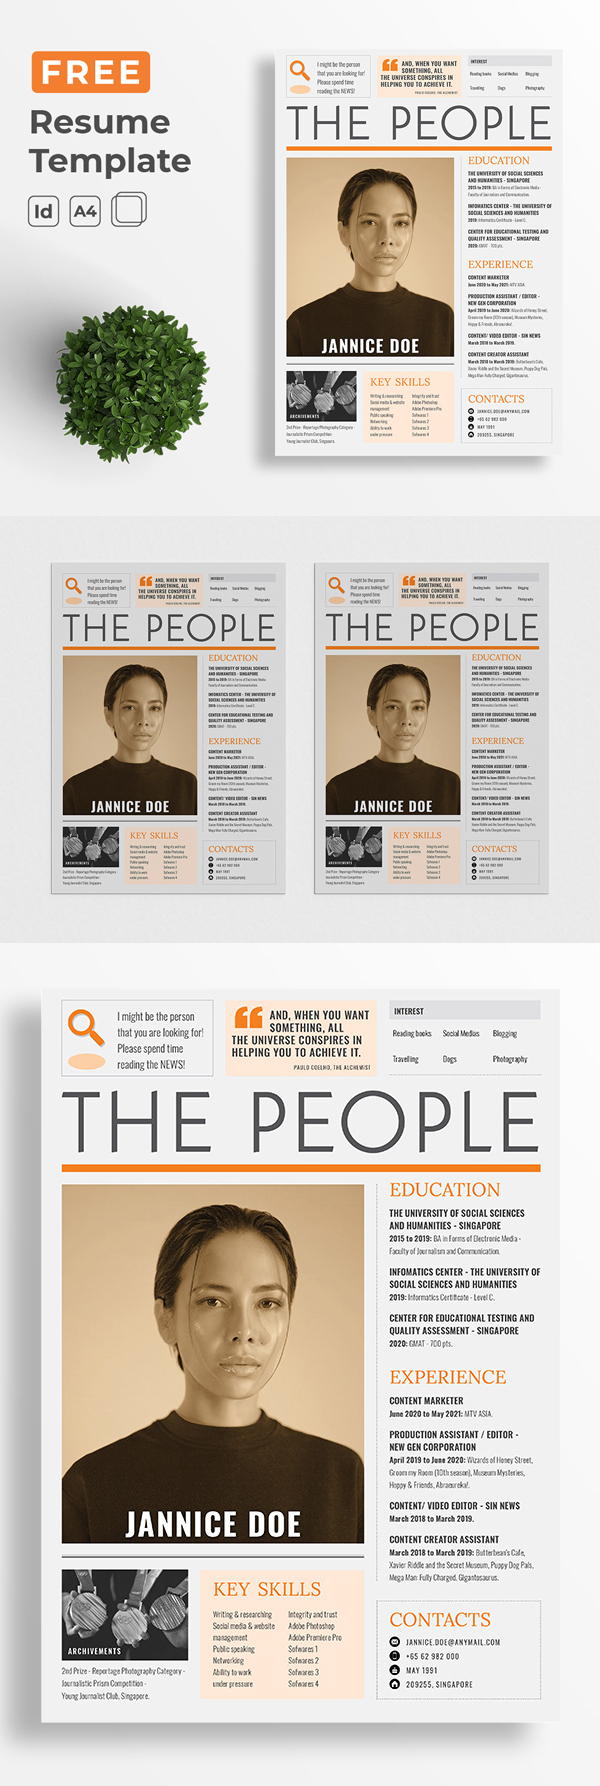 Free Resume Template Newspaper Cover